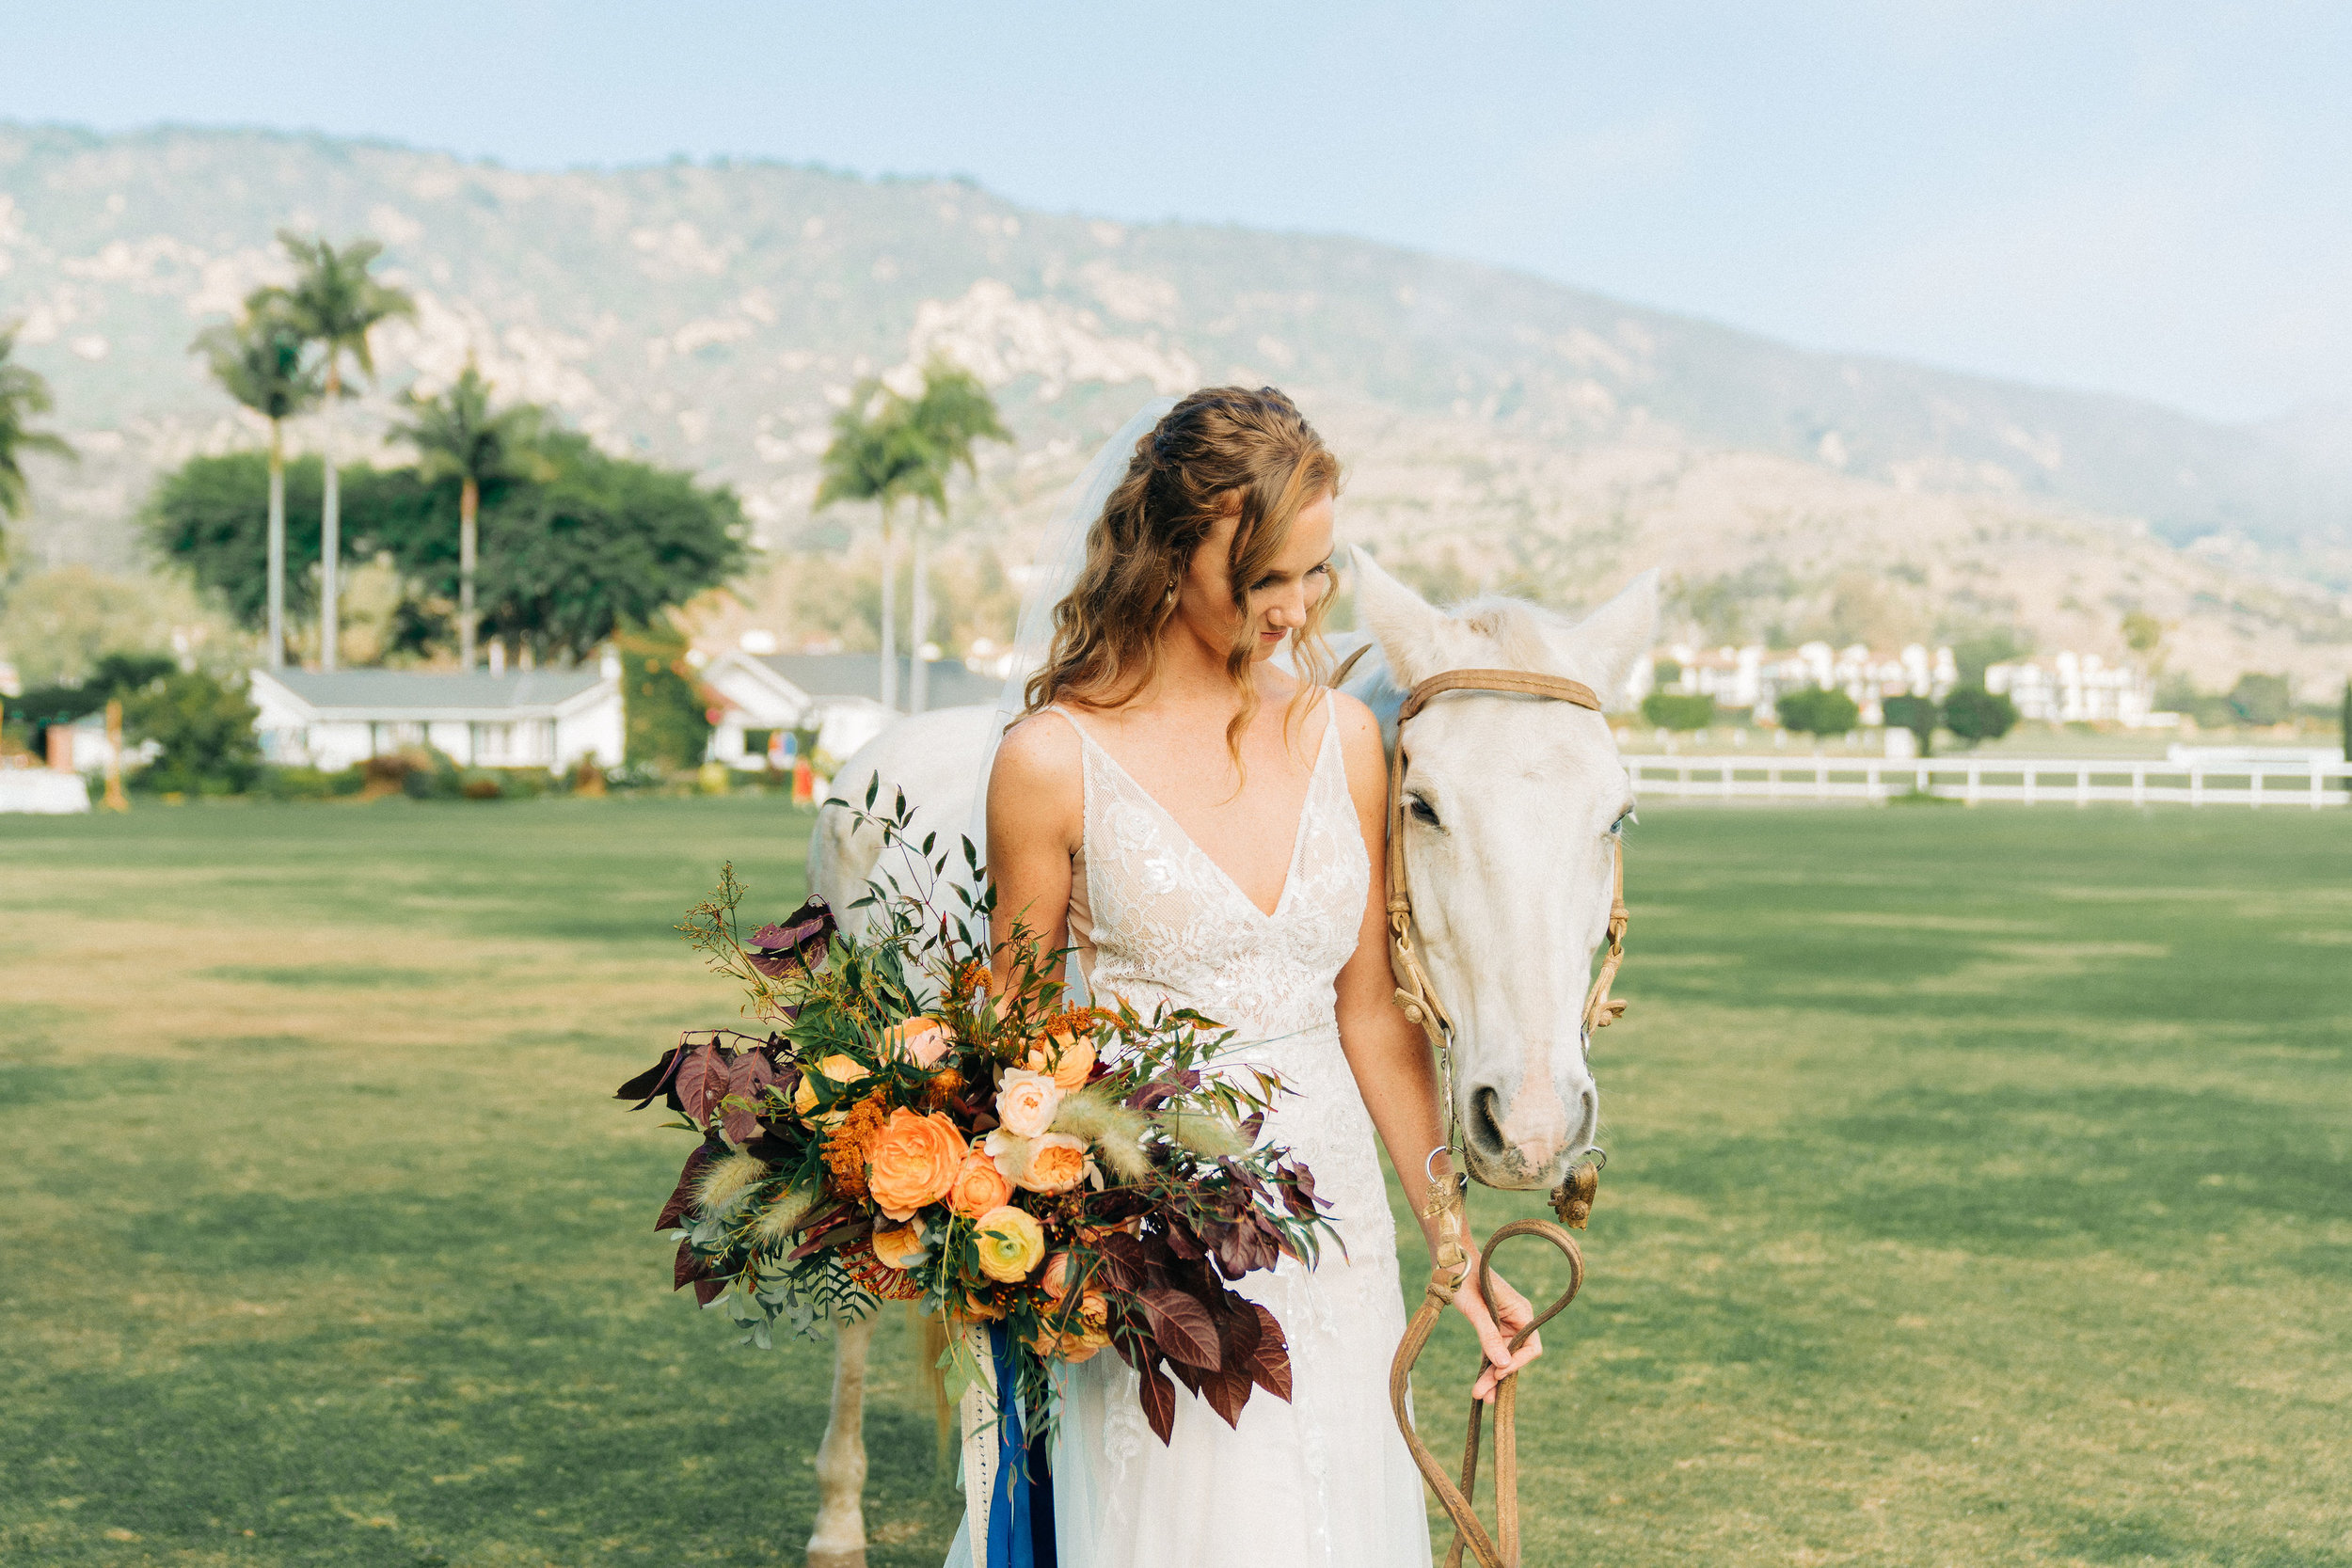 allie-shupe-tyler-wiggins-wedding-santa-barbara 066.jpg